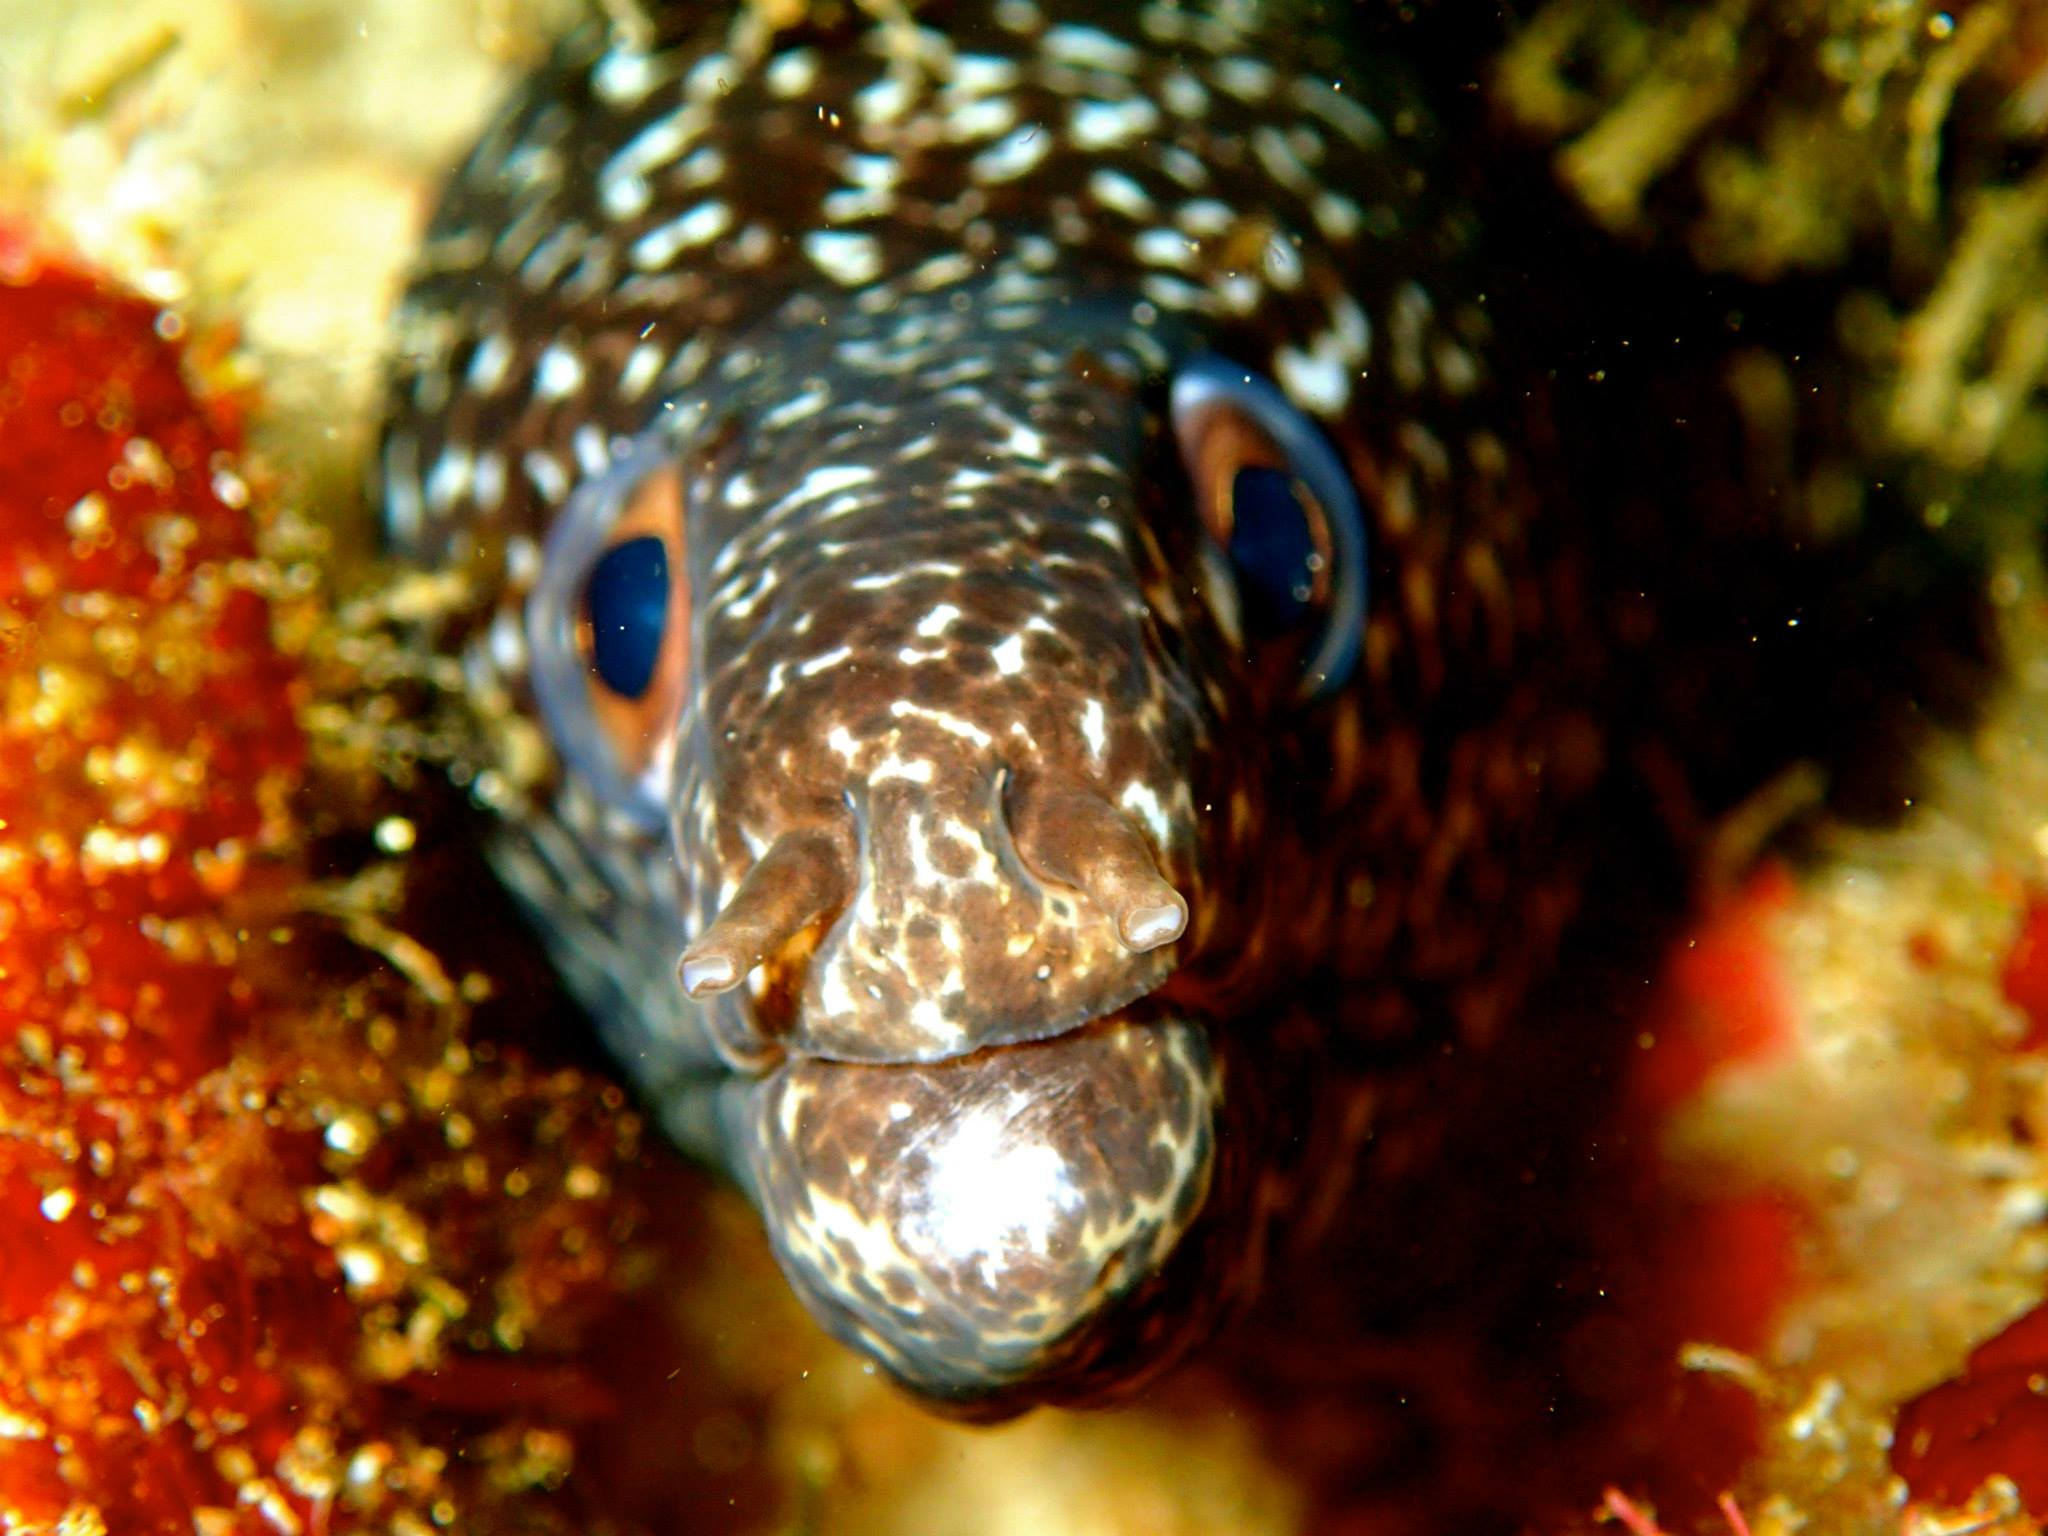 A Spotted eel checks out the camera during a reef dive in the Flower Garden Banks National Marine Sanctuary. Image credit: NOAA